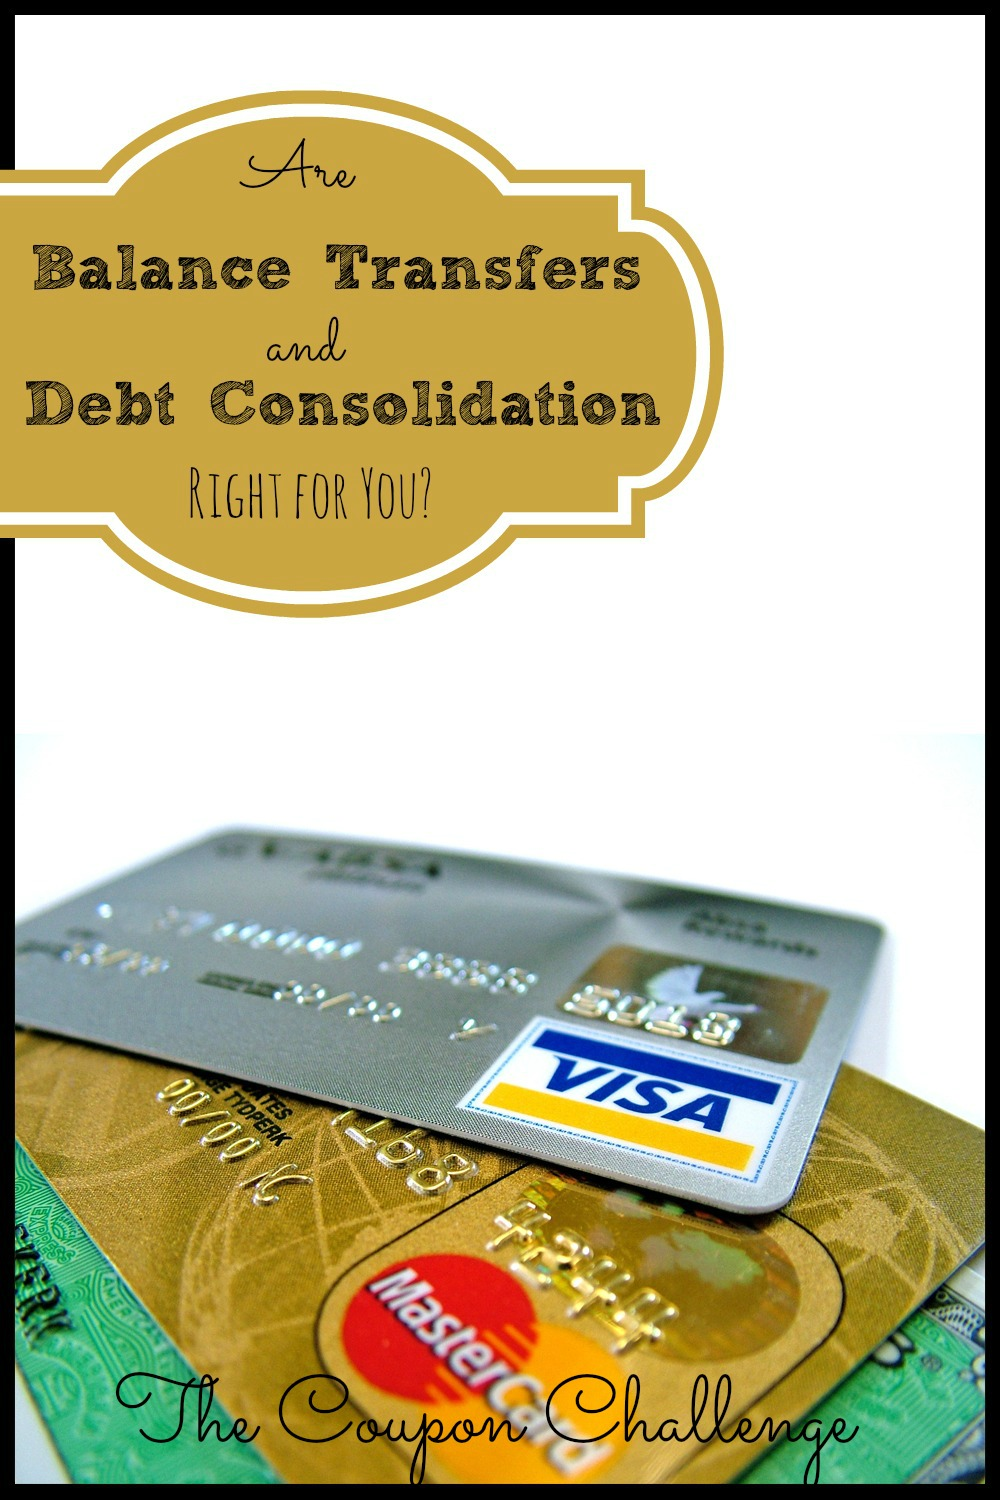 Balance-Transfers-and-Debt-Consolidation